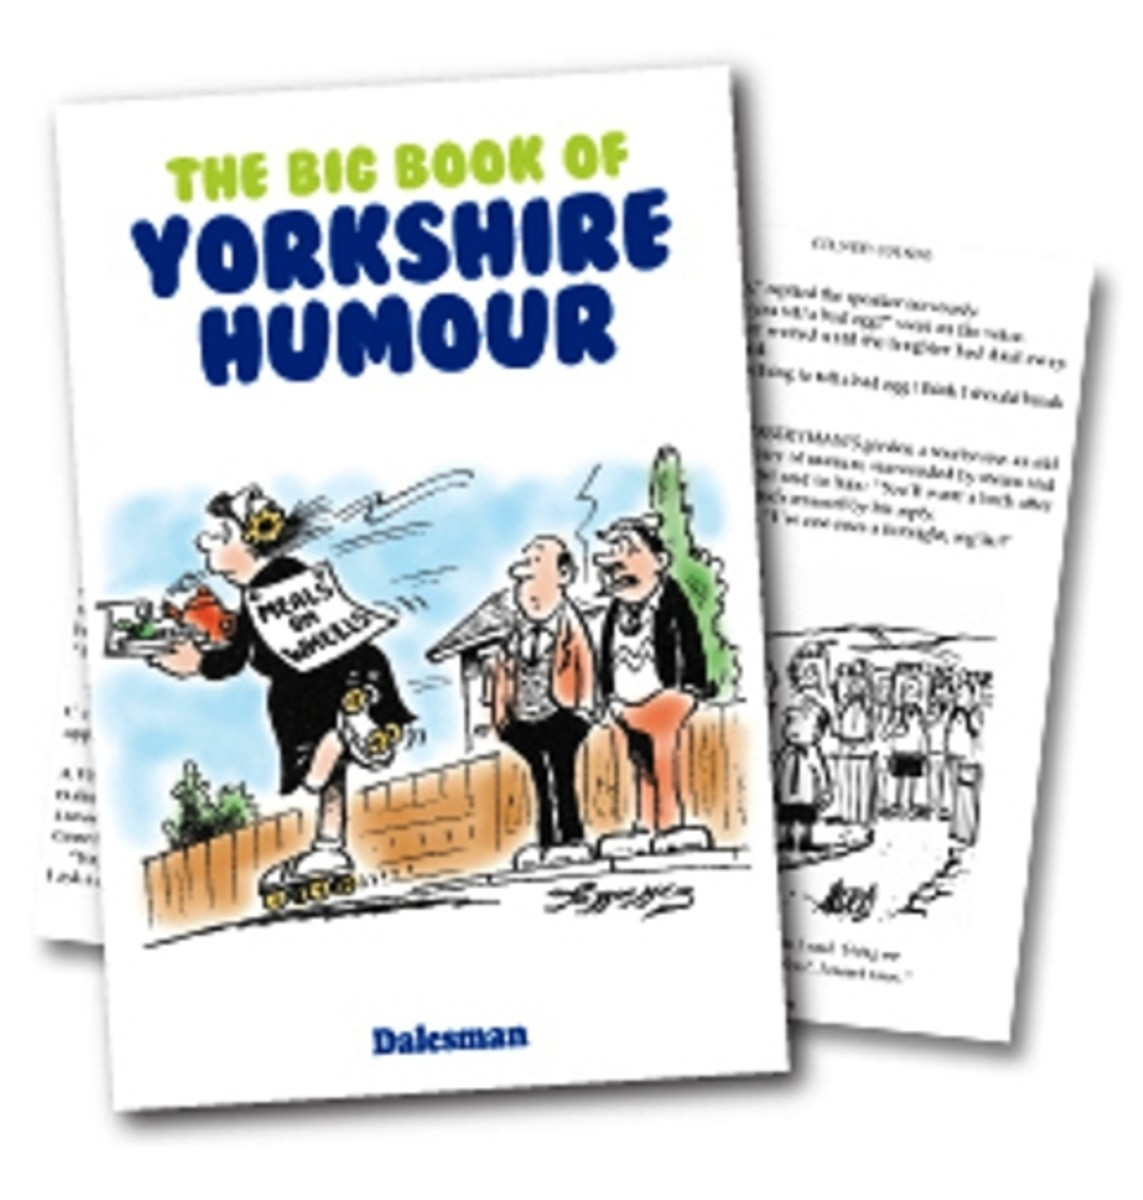 Now you've been bitten by the learning bug, the next stage in understanding Yorkshire will come a bit easier